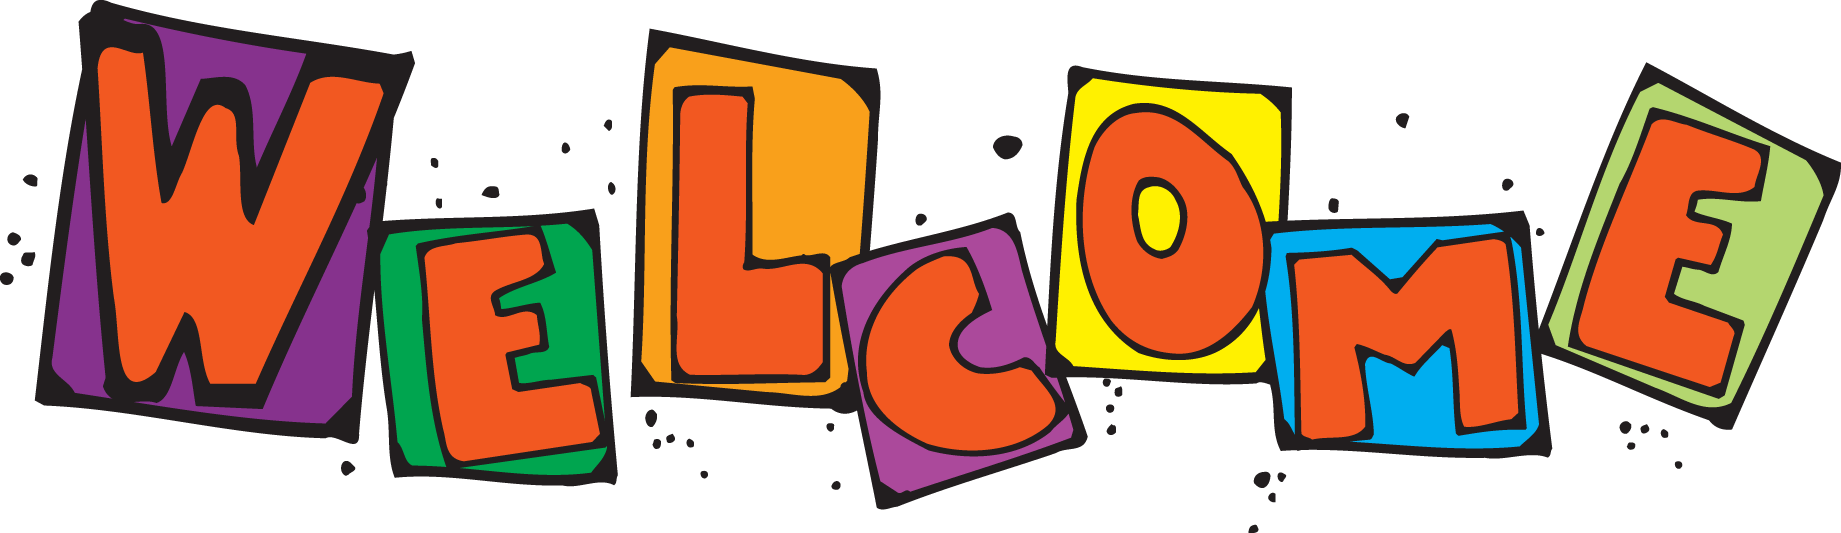 Welcome Clip Art Signs - ClipArt Best